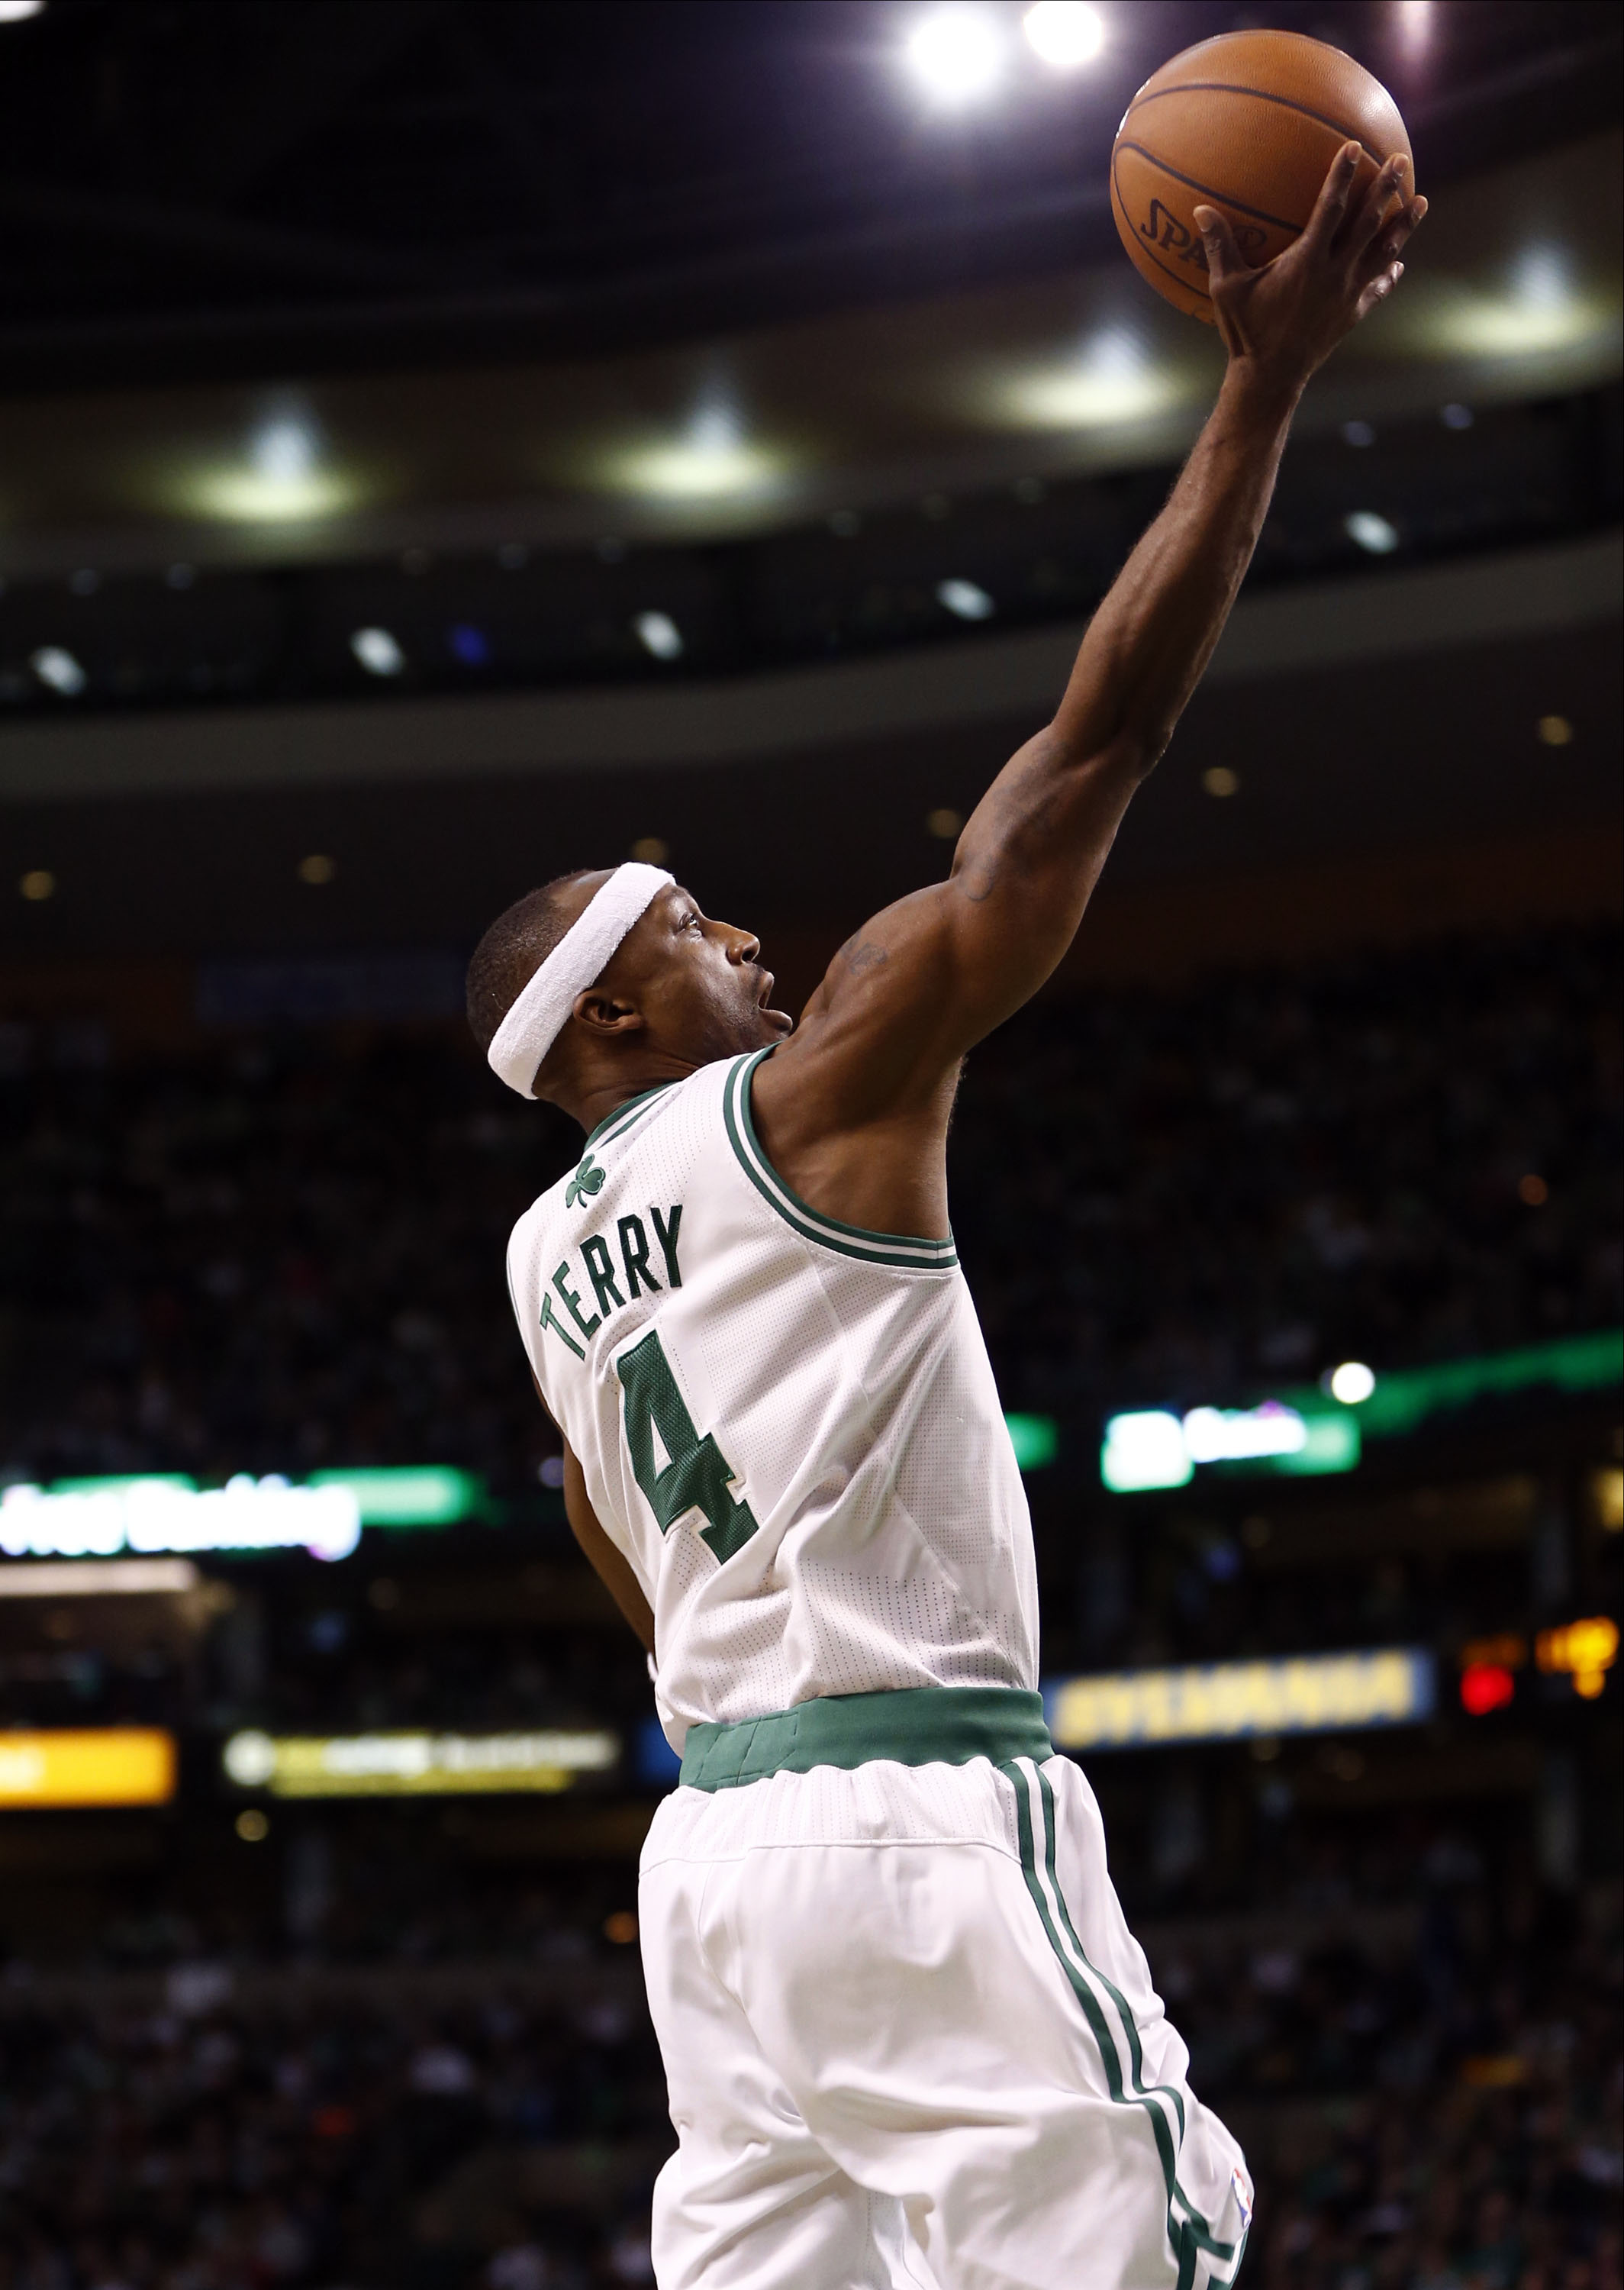 Jason Terry's fantasy game stands to gain from the injury absence of Rajon Rondo. (USAT)